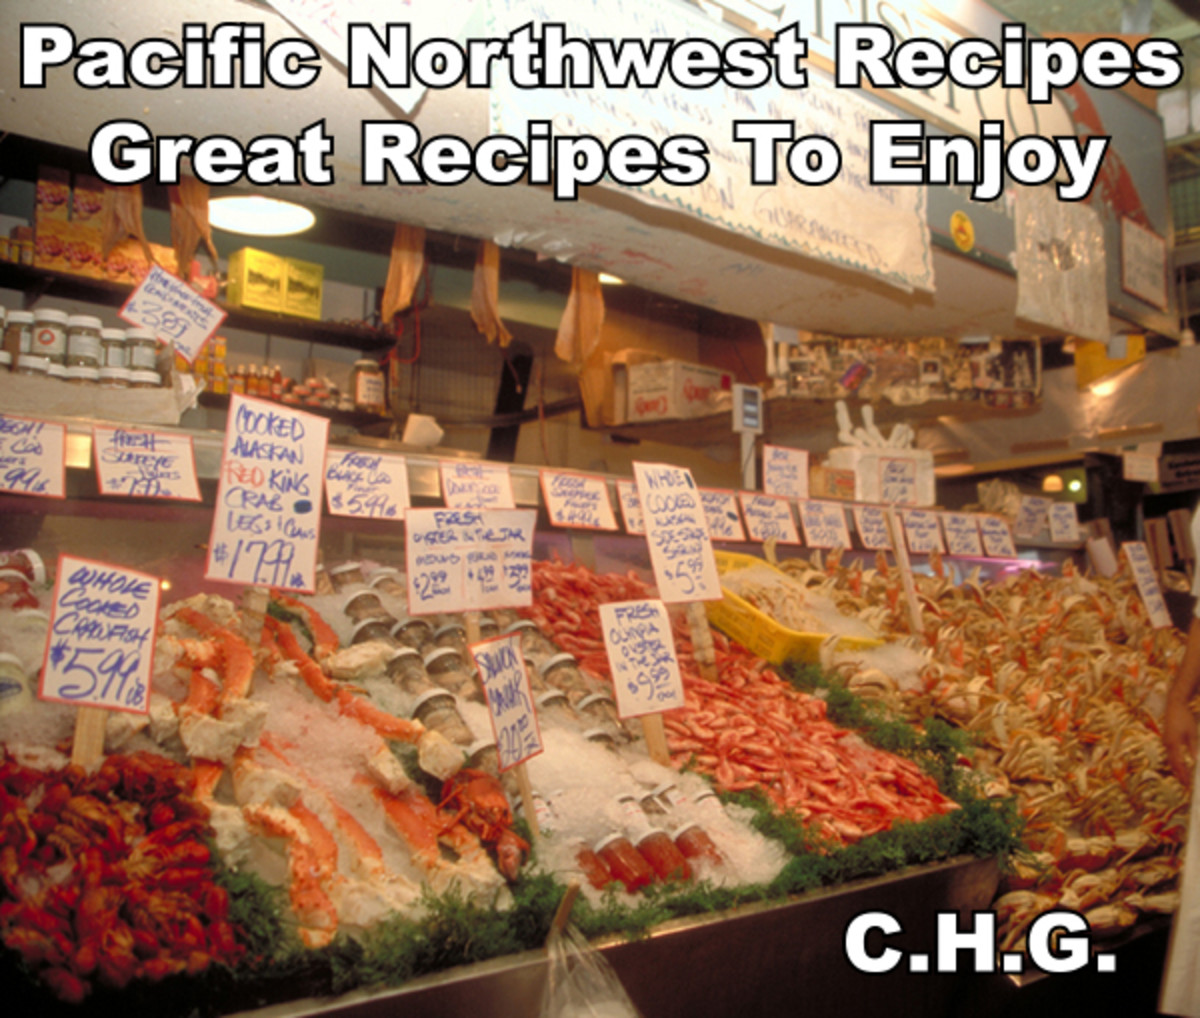 Delicious Recipes From The Pacific Northwest